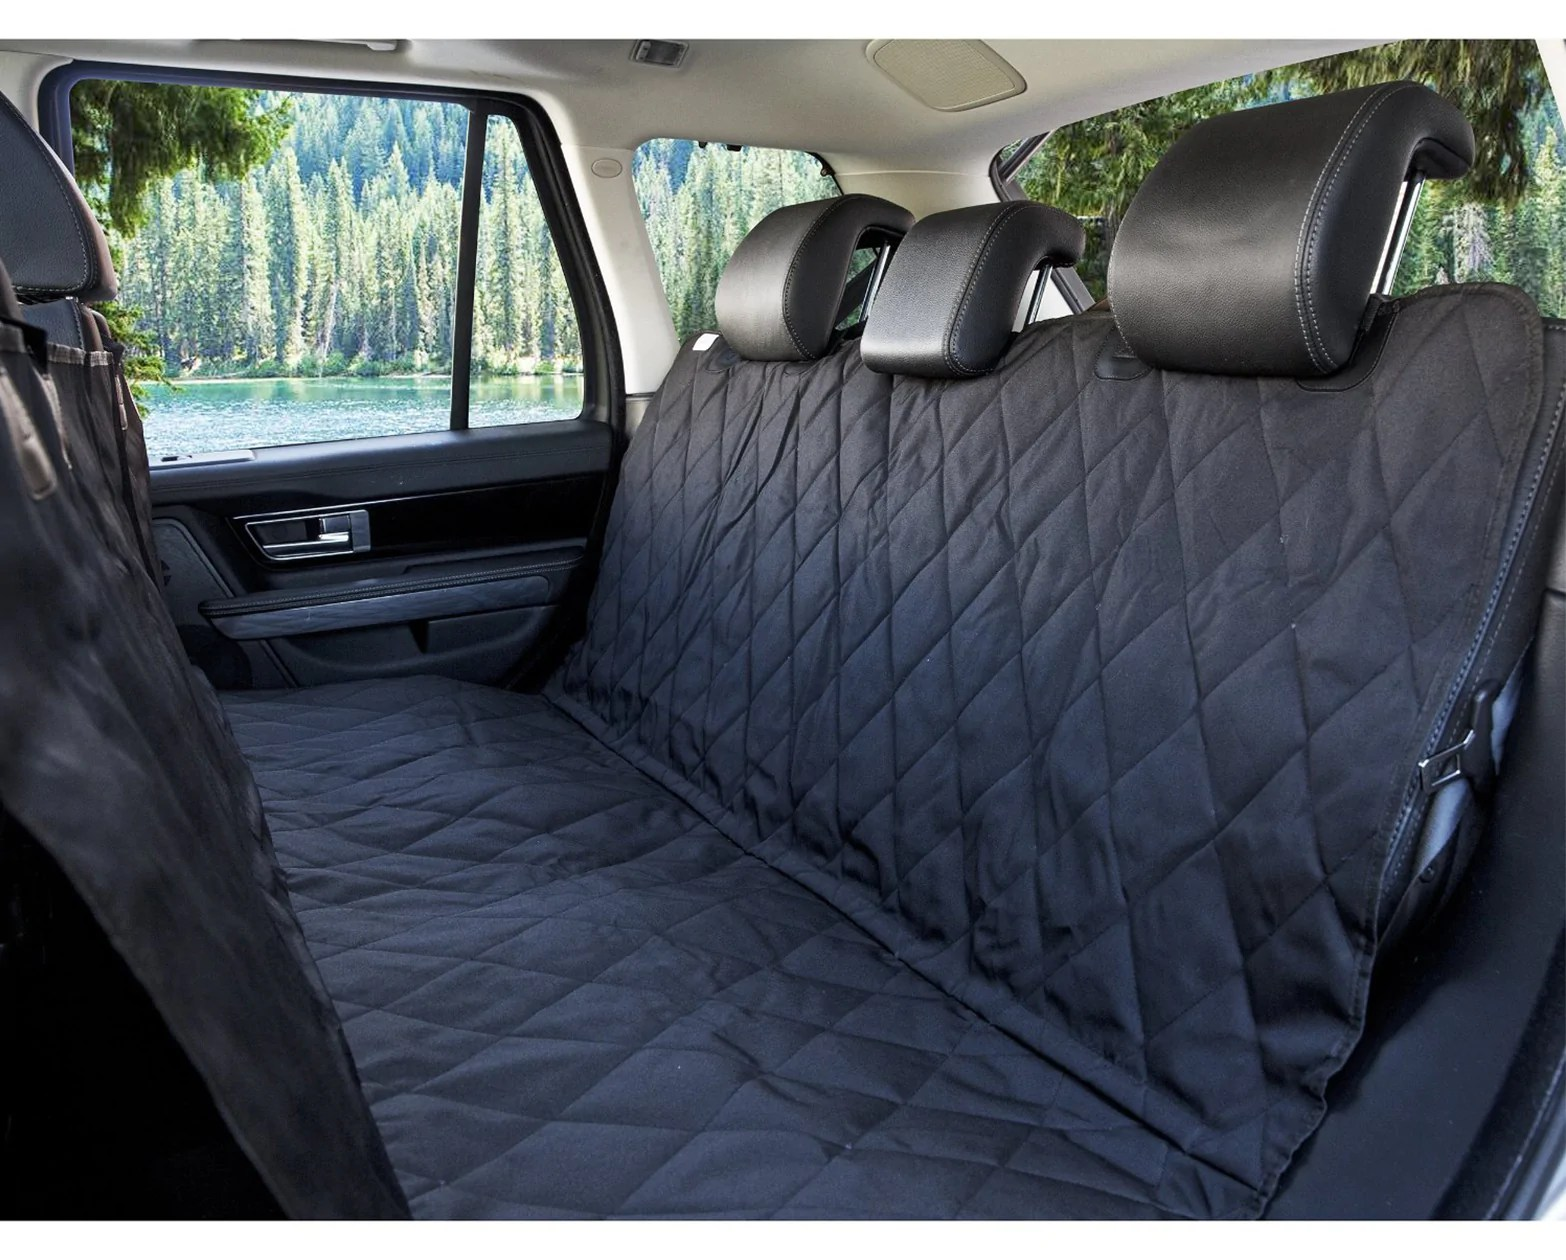 Where Can I Find Seat Covers Pupprotector Back Seat Dog Car Cover